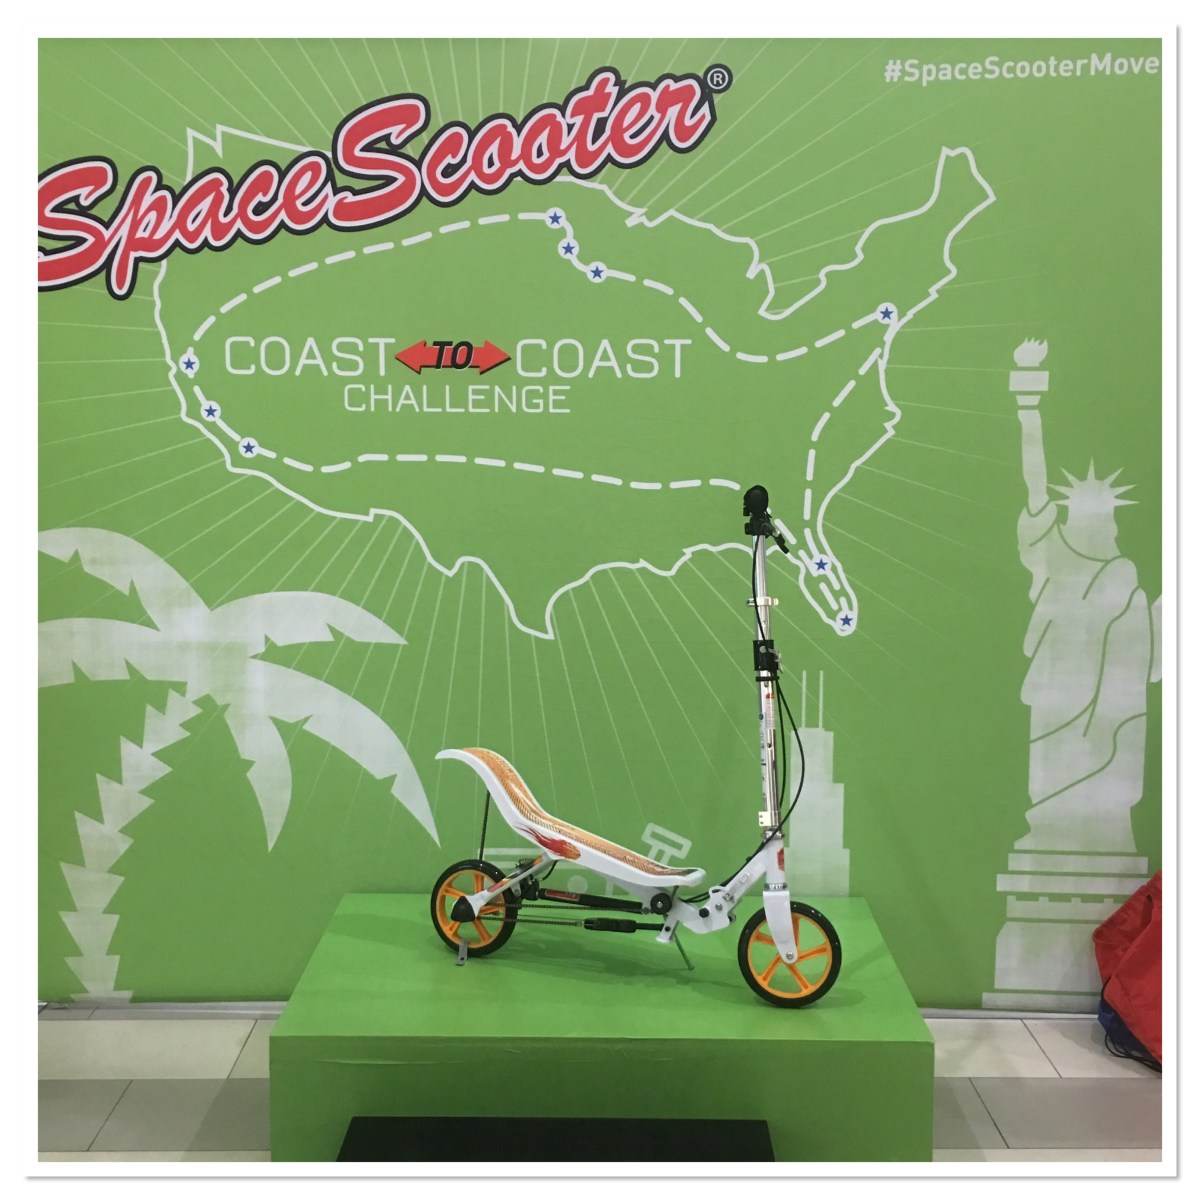 Space Scooter Movement